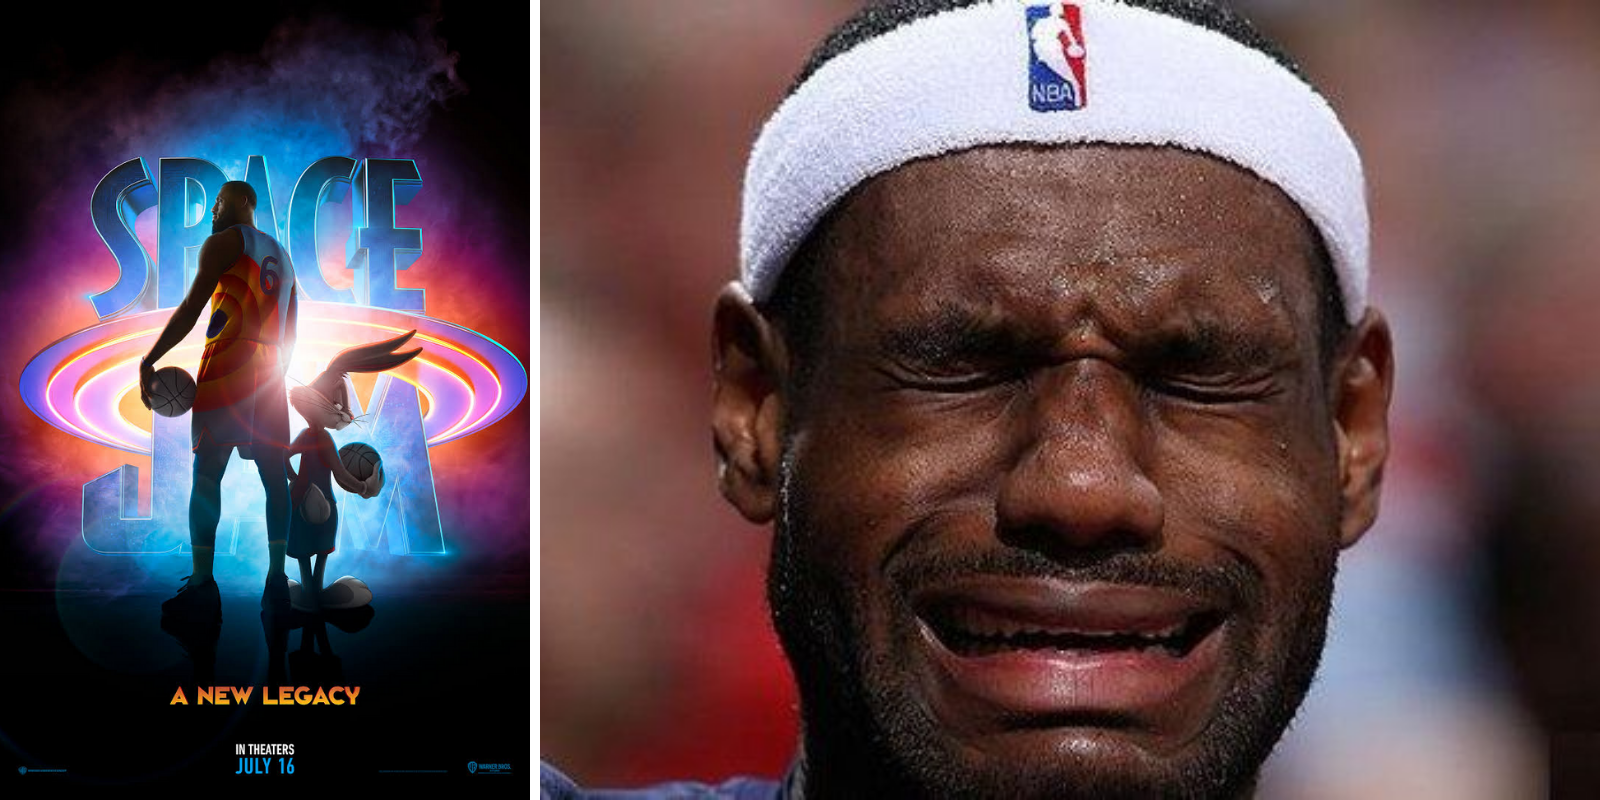 LeBron James BOMBS at box office after going woke and simping for China